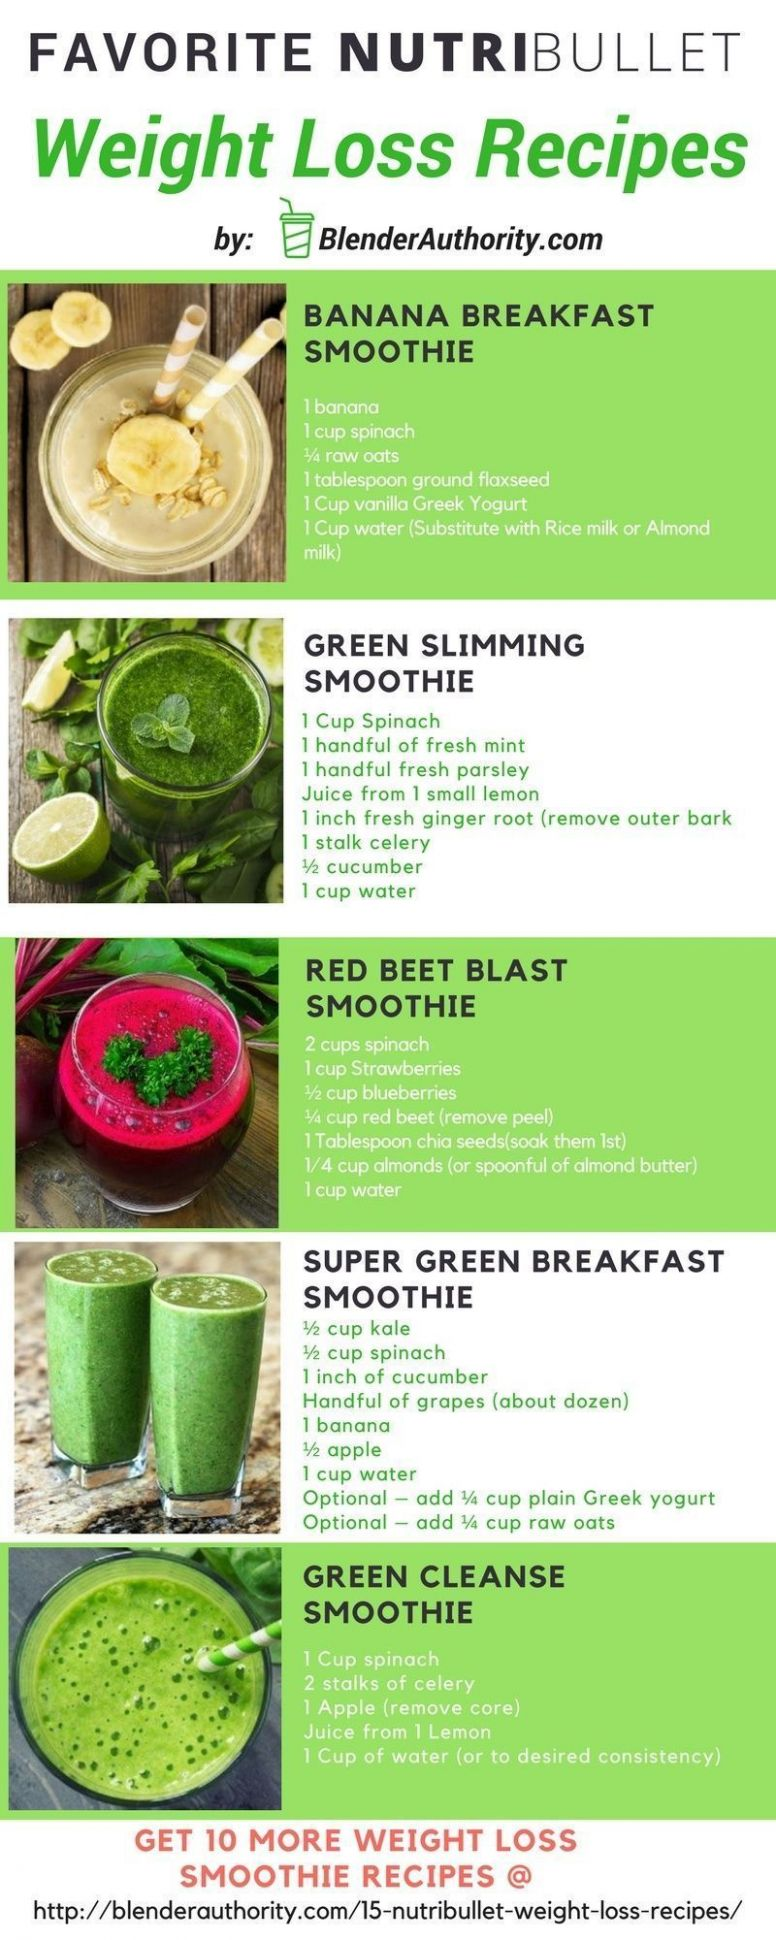 Pin on recipes - Smoothie Recipes For Weight Loss And Detox